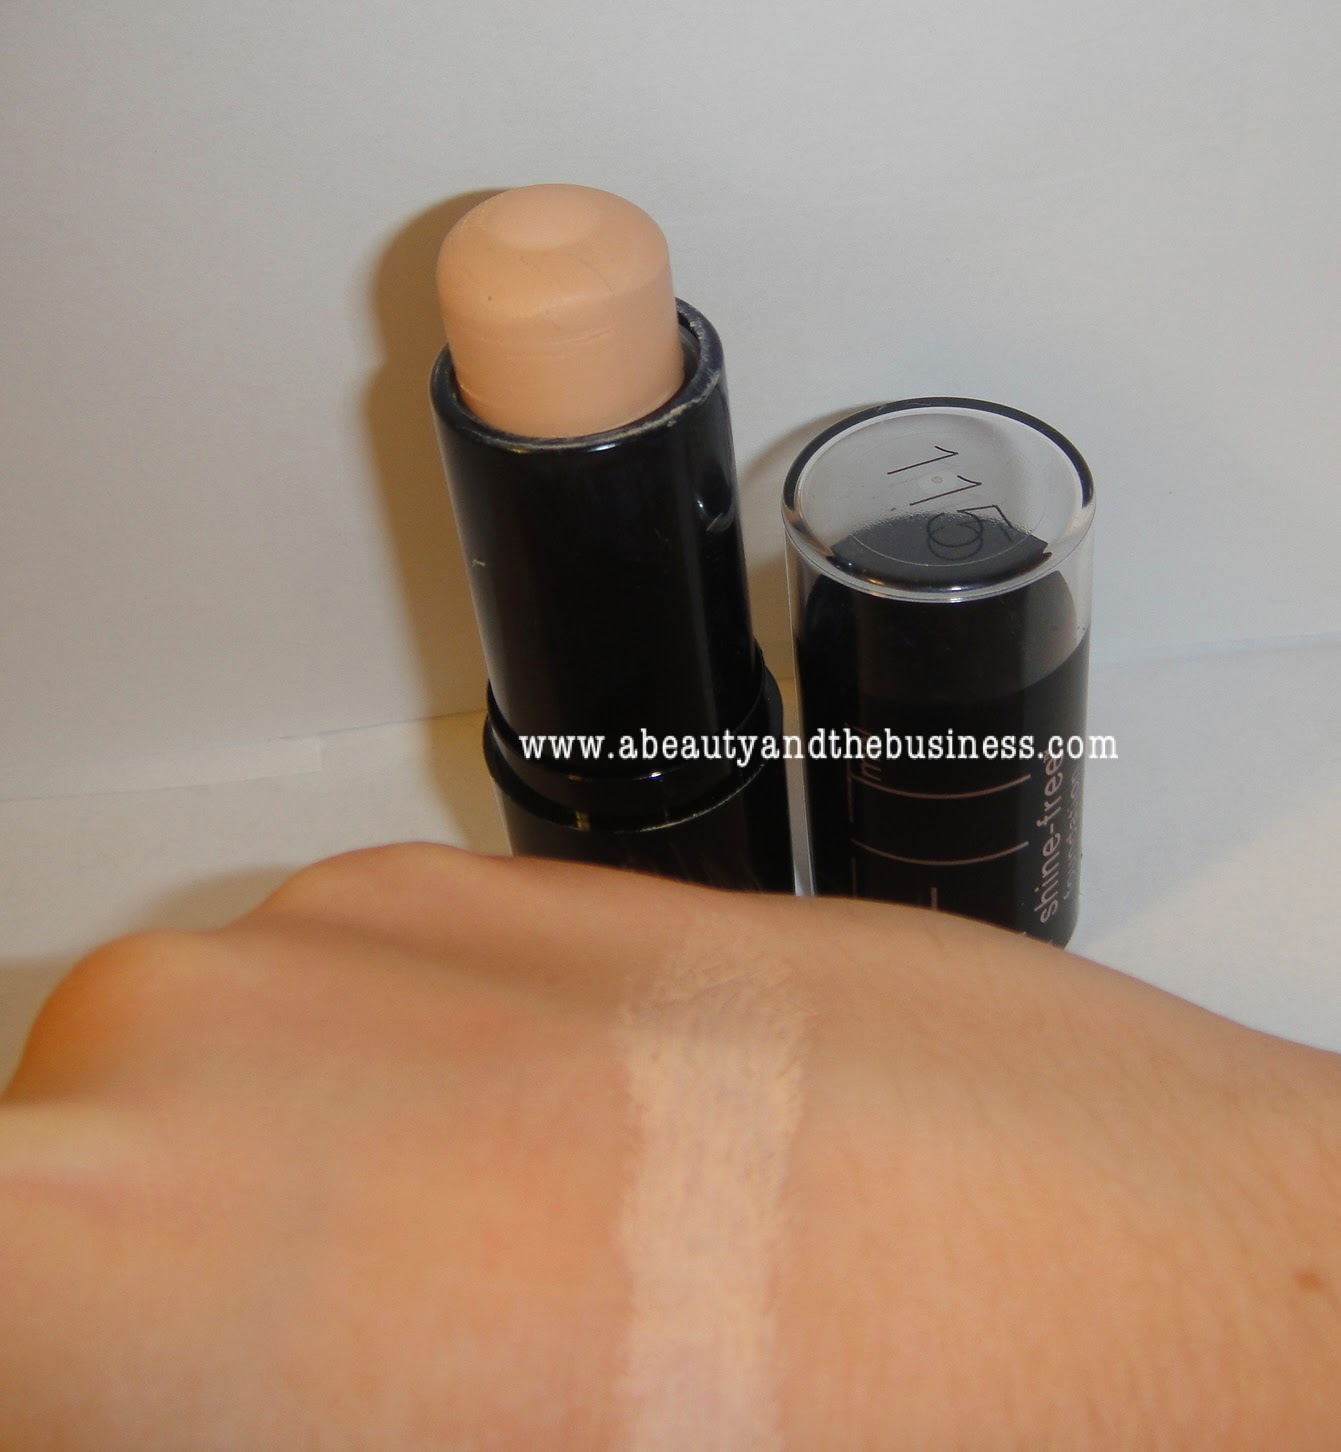 summer foundation, oily skin foundation, matte foundation, foundation stick, maybelline, maybelline foundation, maybelline fit me, maybelline fit me foundation stick in 115,